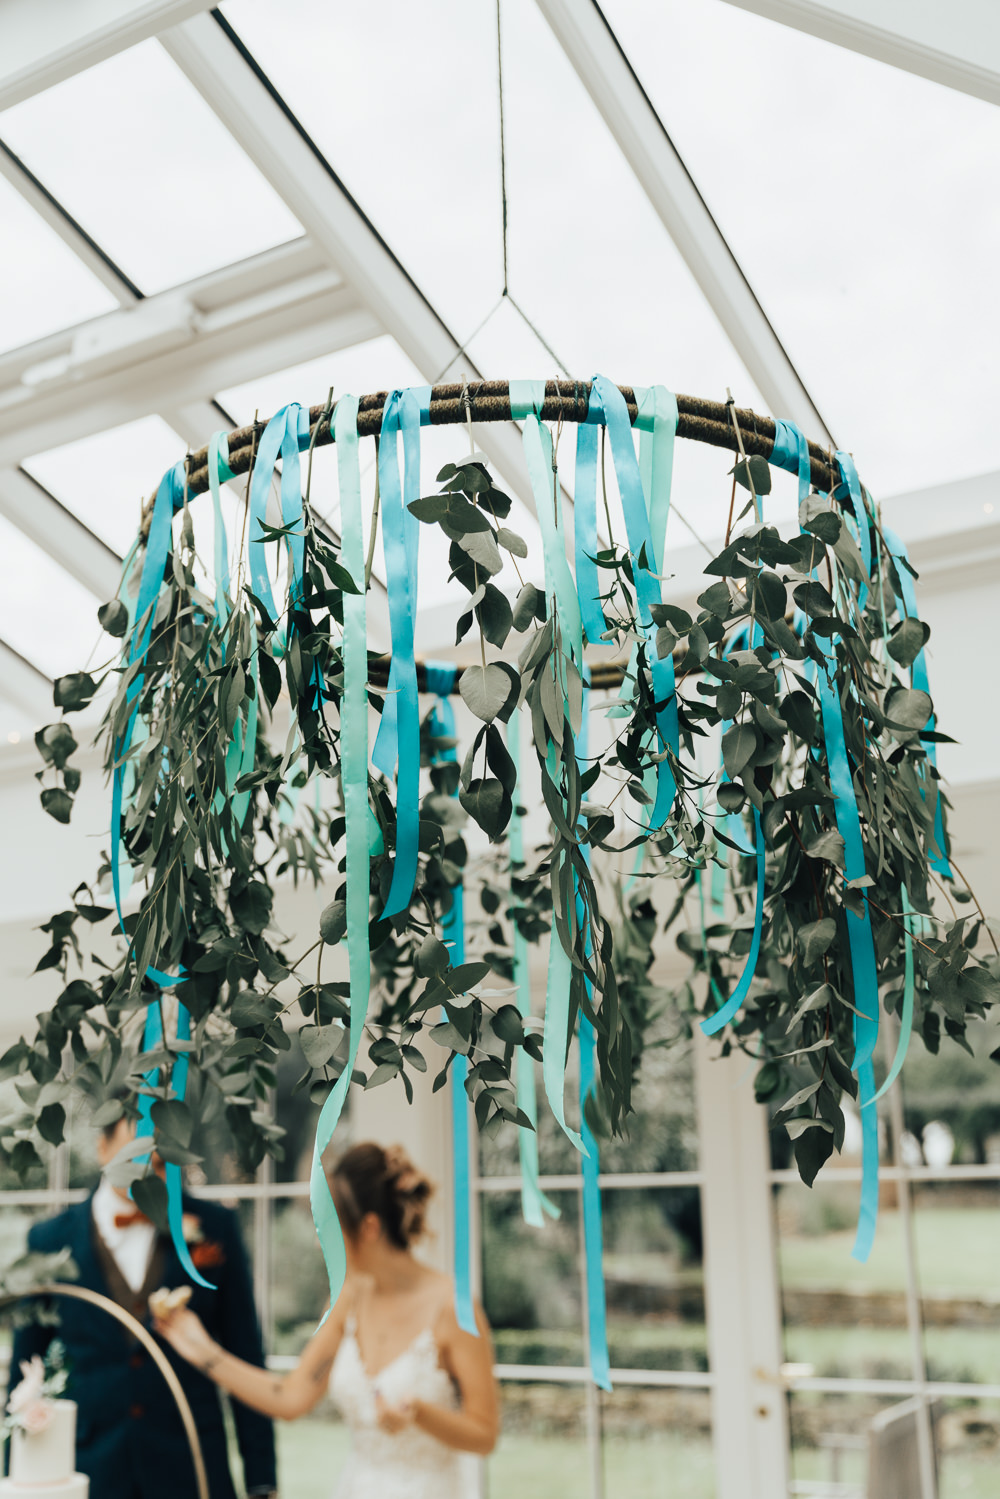 Hanging Flowers Suspended Ribbon Greenery Foliage Hoop Wedding Ideas Rebecca Carpenter Photography